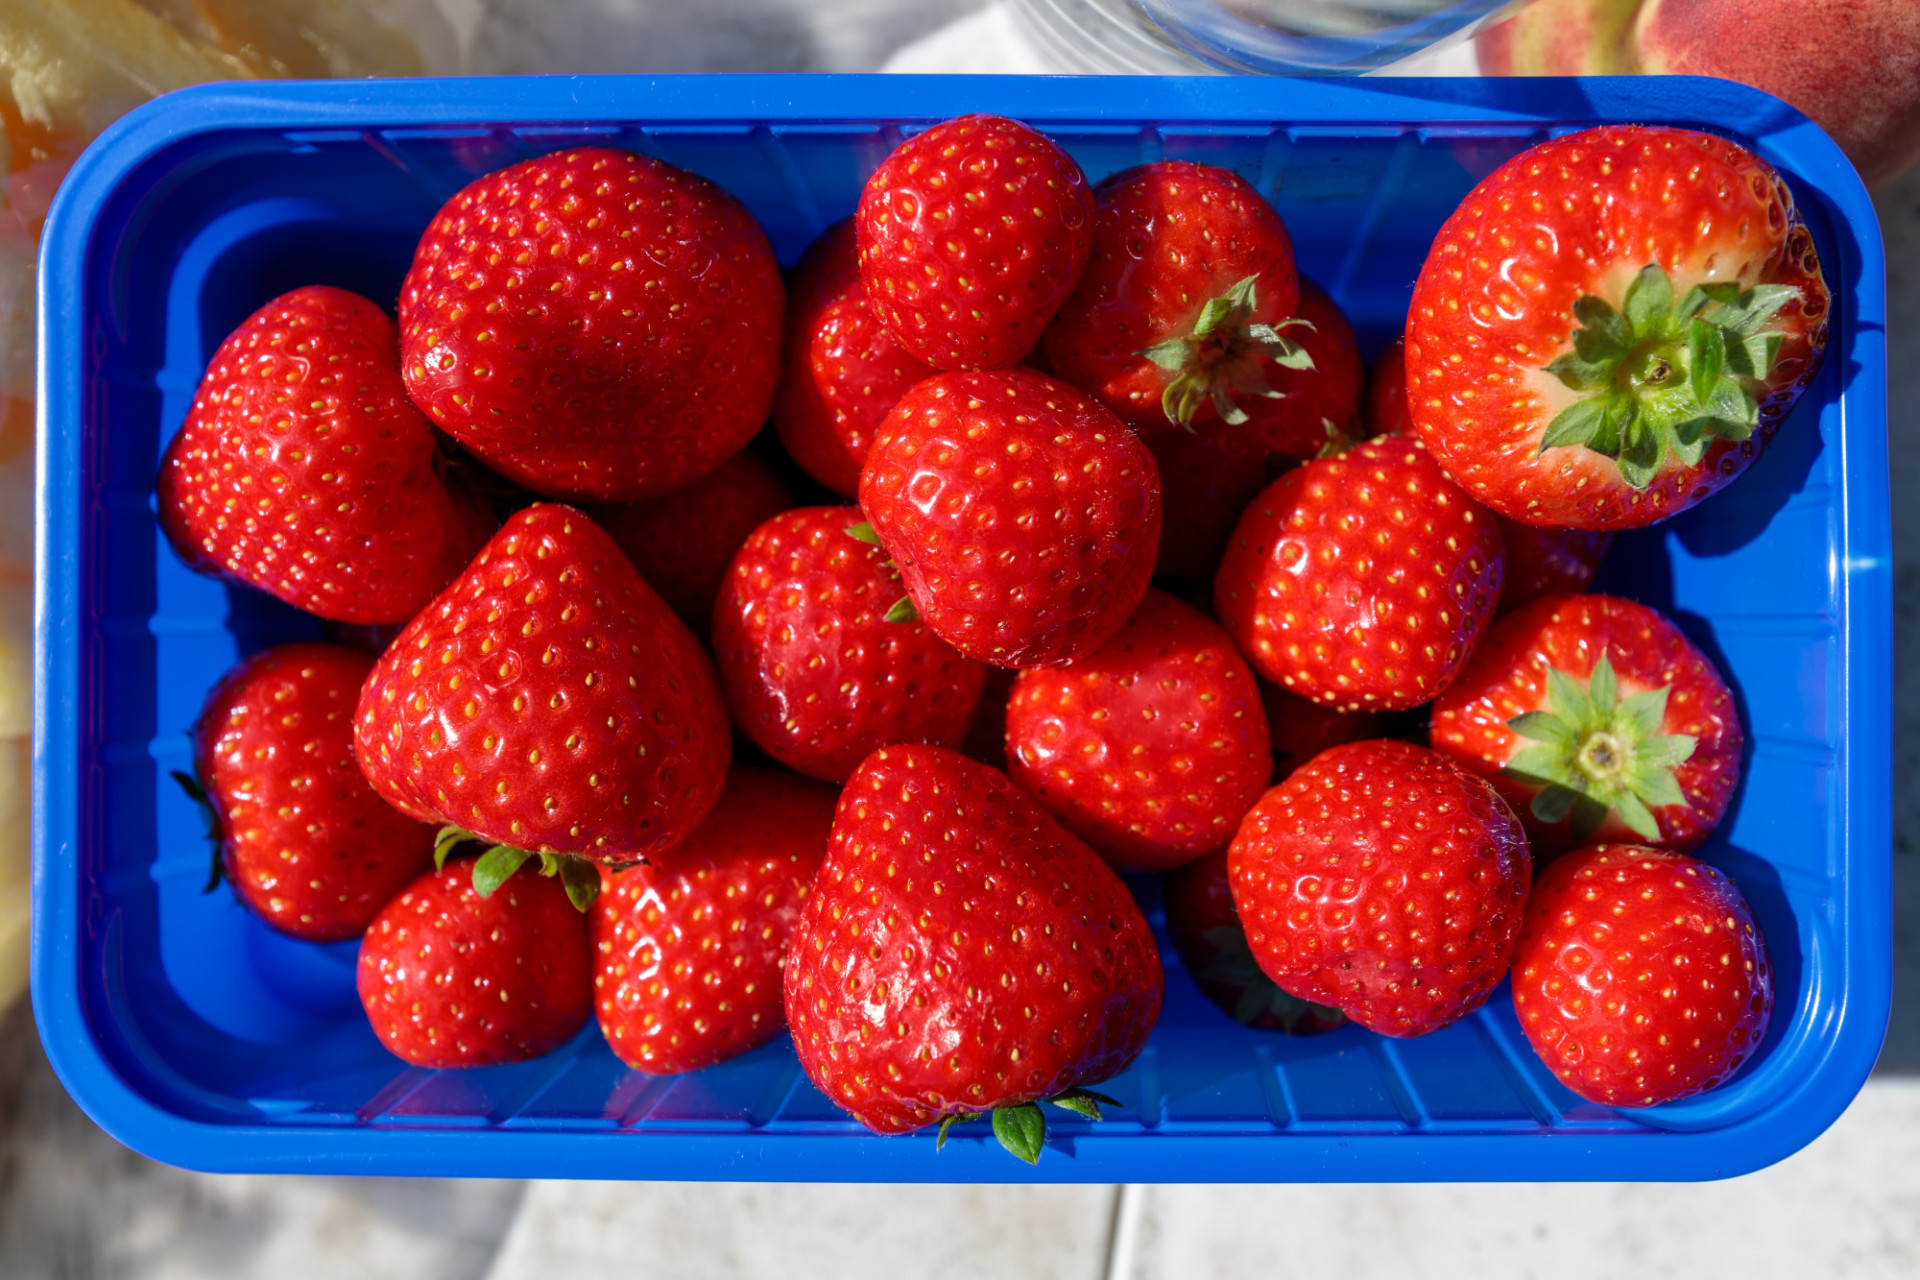 Strawberries from the supermarket in a blue plastic bowl